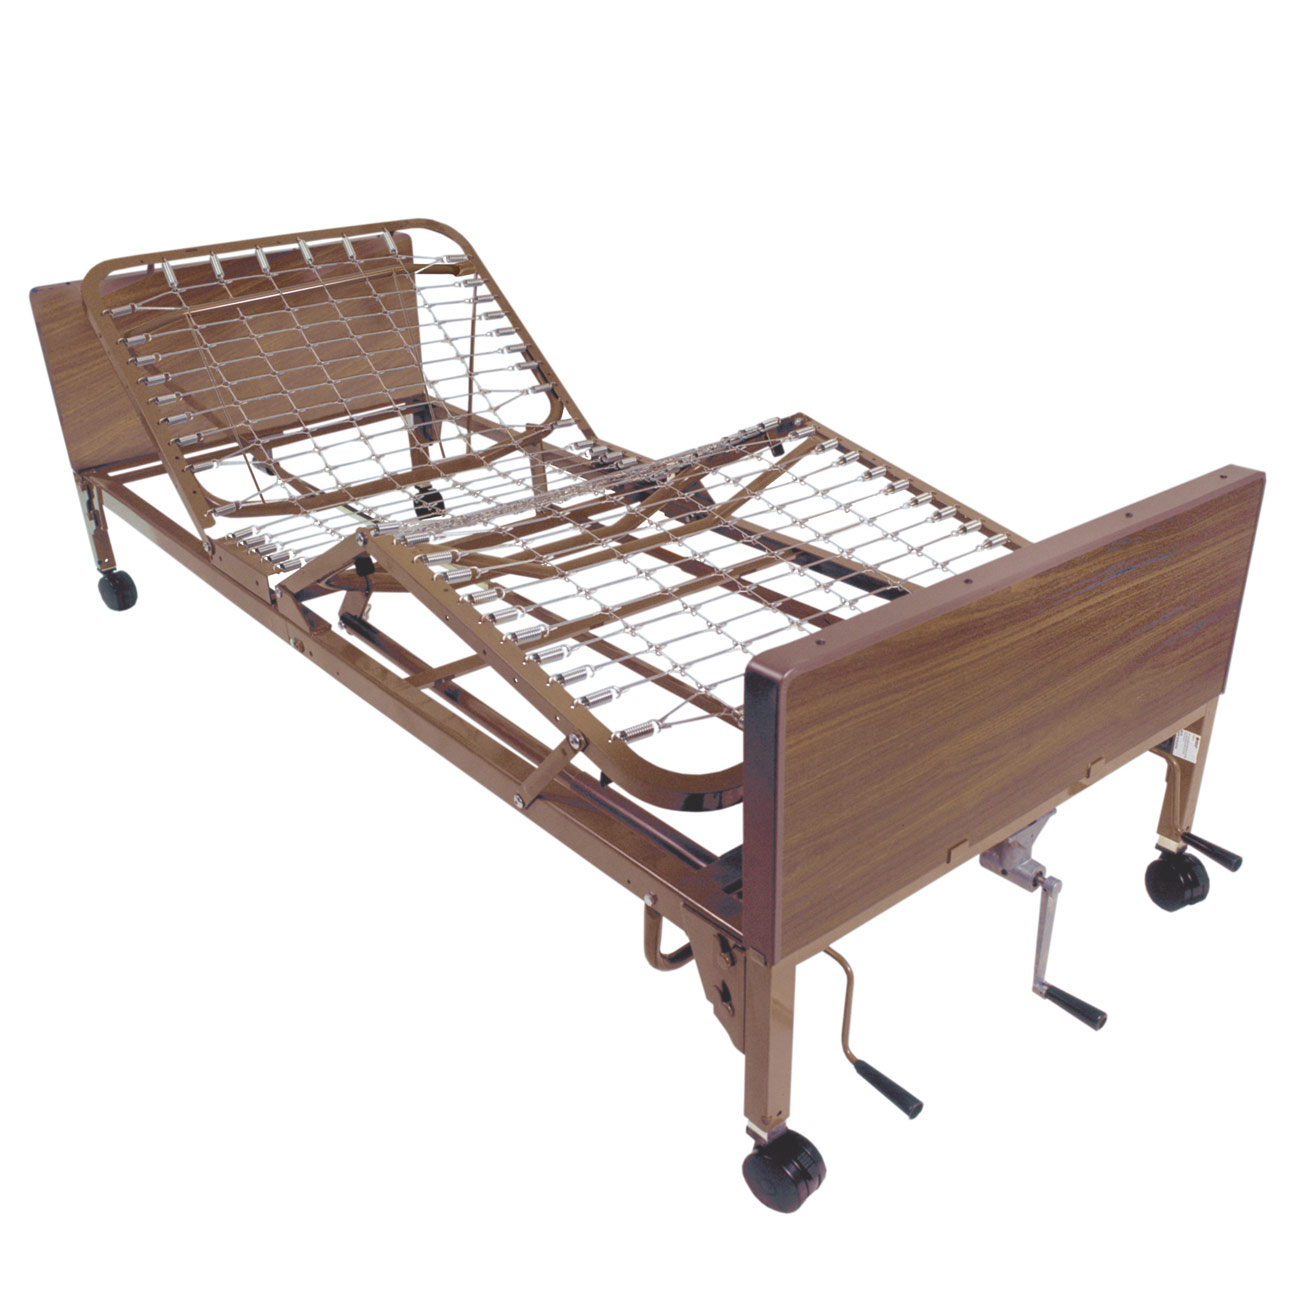 Multi-Height Manual Bed -full length  side rails - click to view larger image